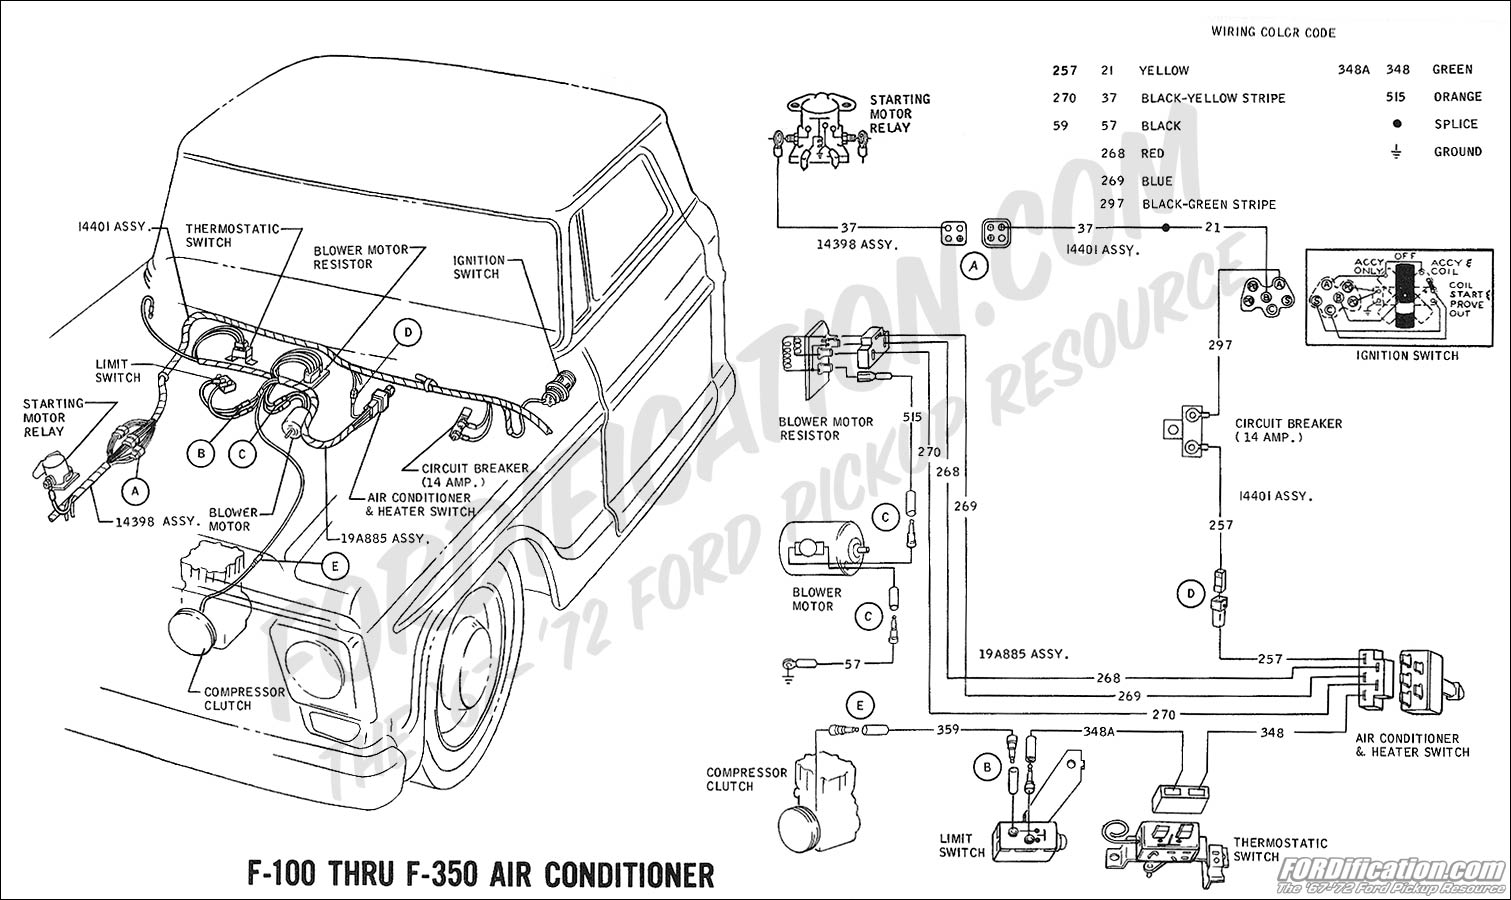 1988 Toyota Pickup Wiring Diagram Air Conditioning Electrical Integra Radio Harness Color Code 1989 Ford Ranger Ac Just Data Diagrams